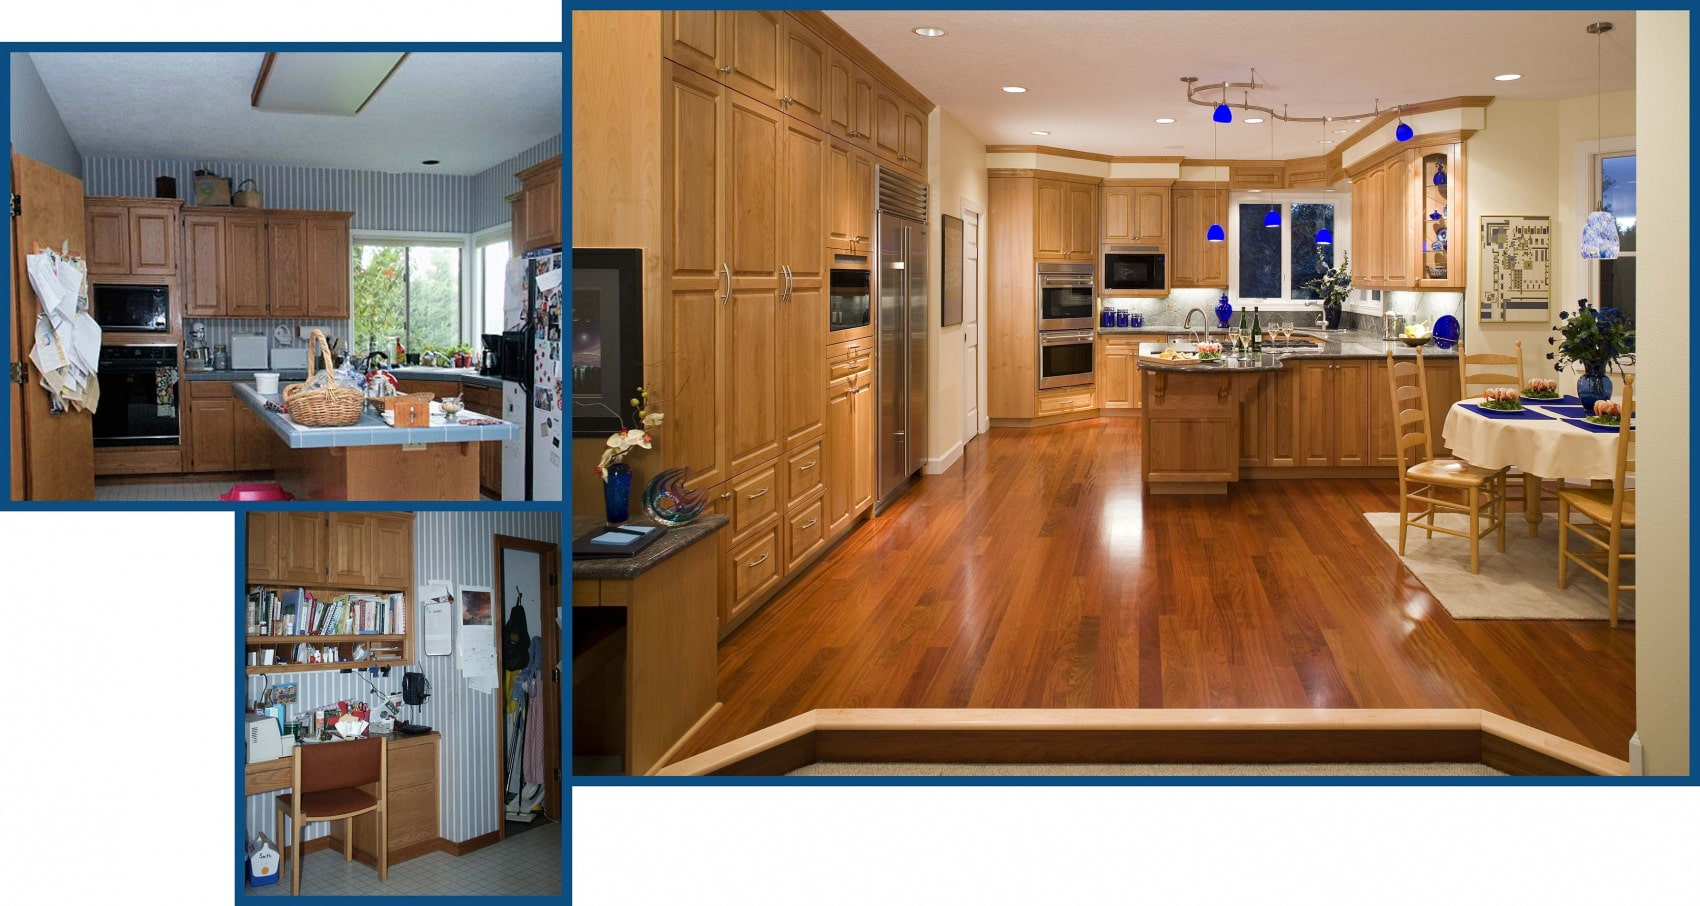 Tualatin Kitchen Remodel Before and After